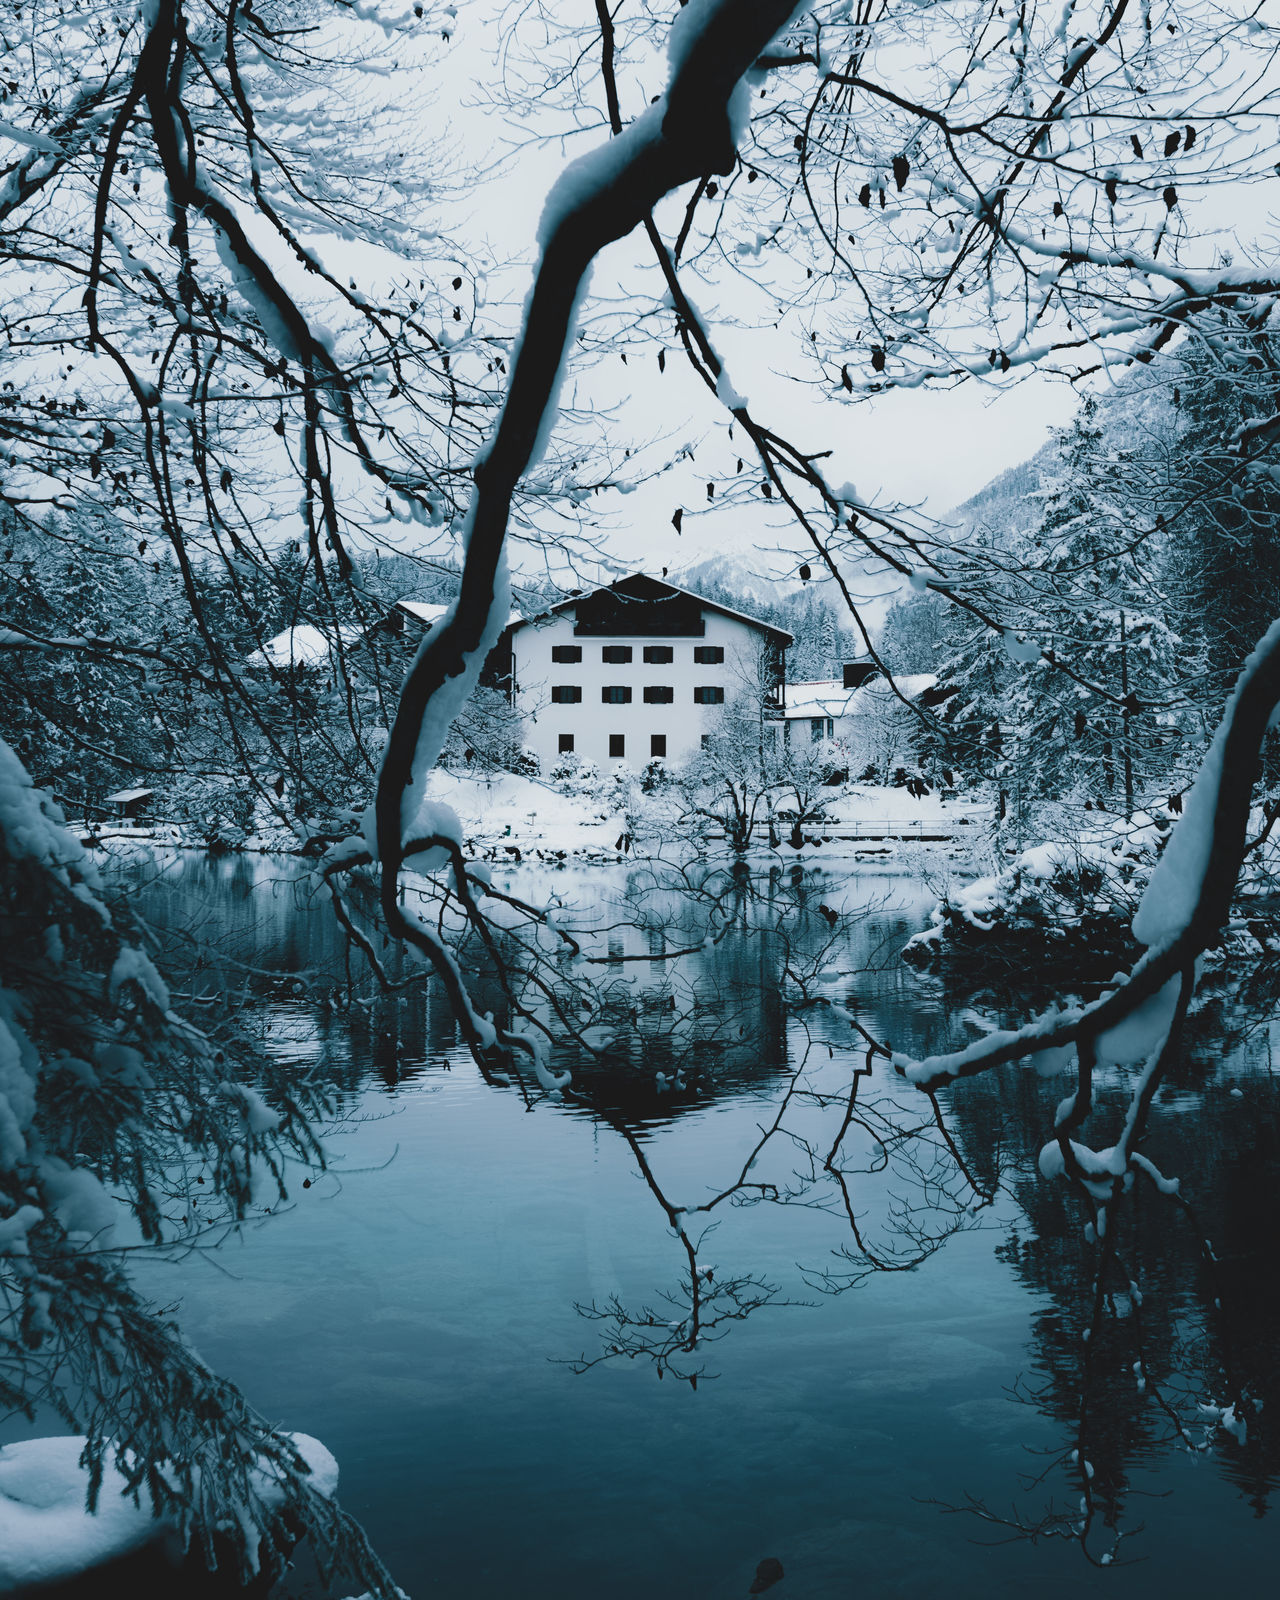 Reflection of a house at a winter mountain lake Architecture Bare Tree Beauty In Nature Branch Cold Temperature Day EyeEm Best Shots House Landscape_Collection Nature No People Outdoors Reflection Sky Snow TheWeekOnEyeEM Tranquility Tree Winter